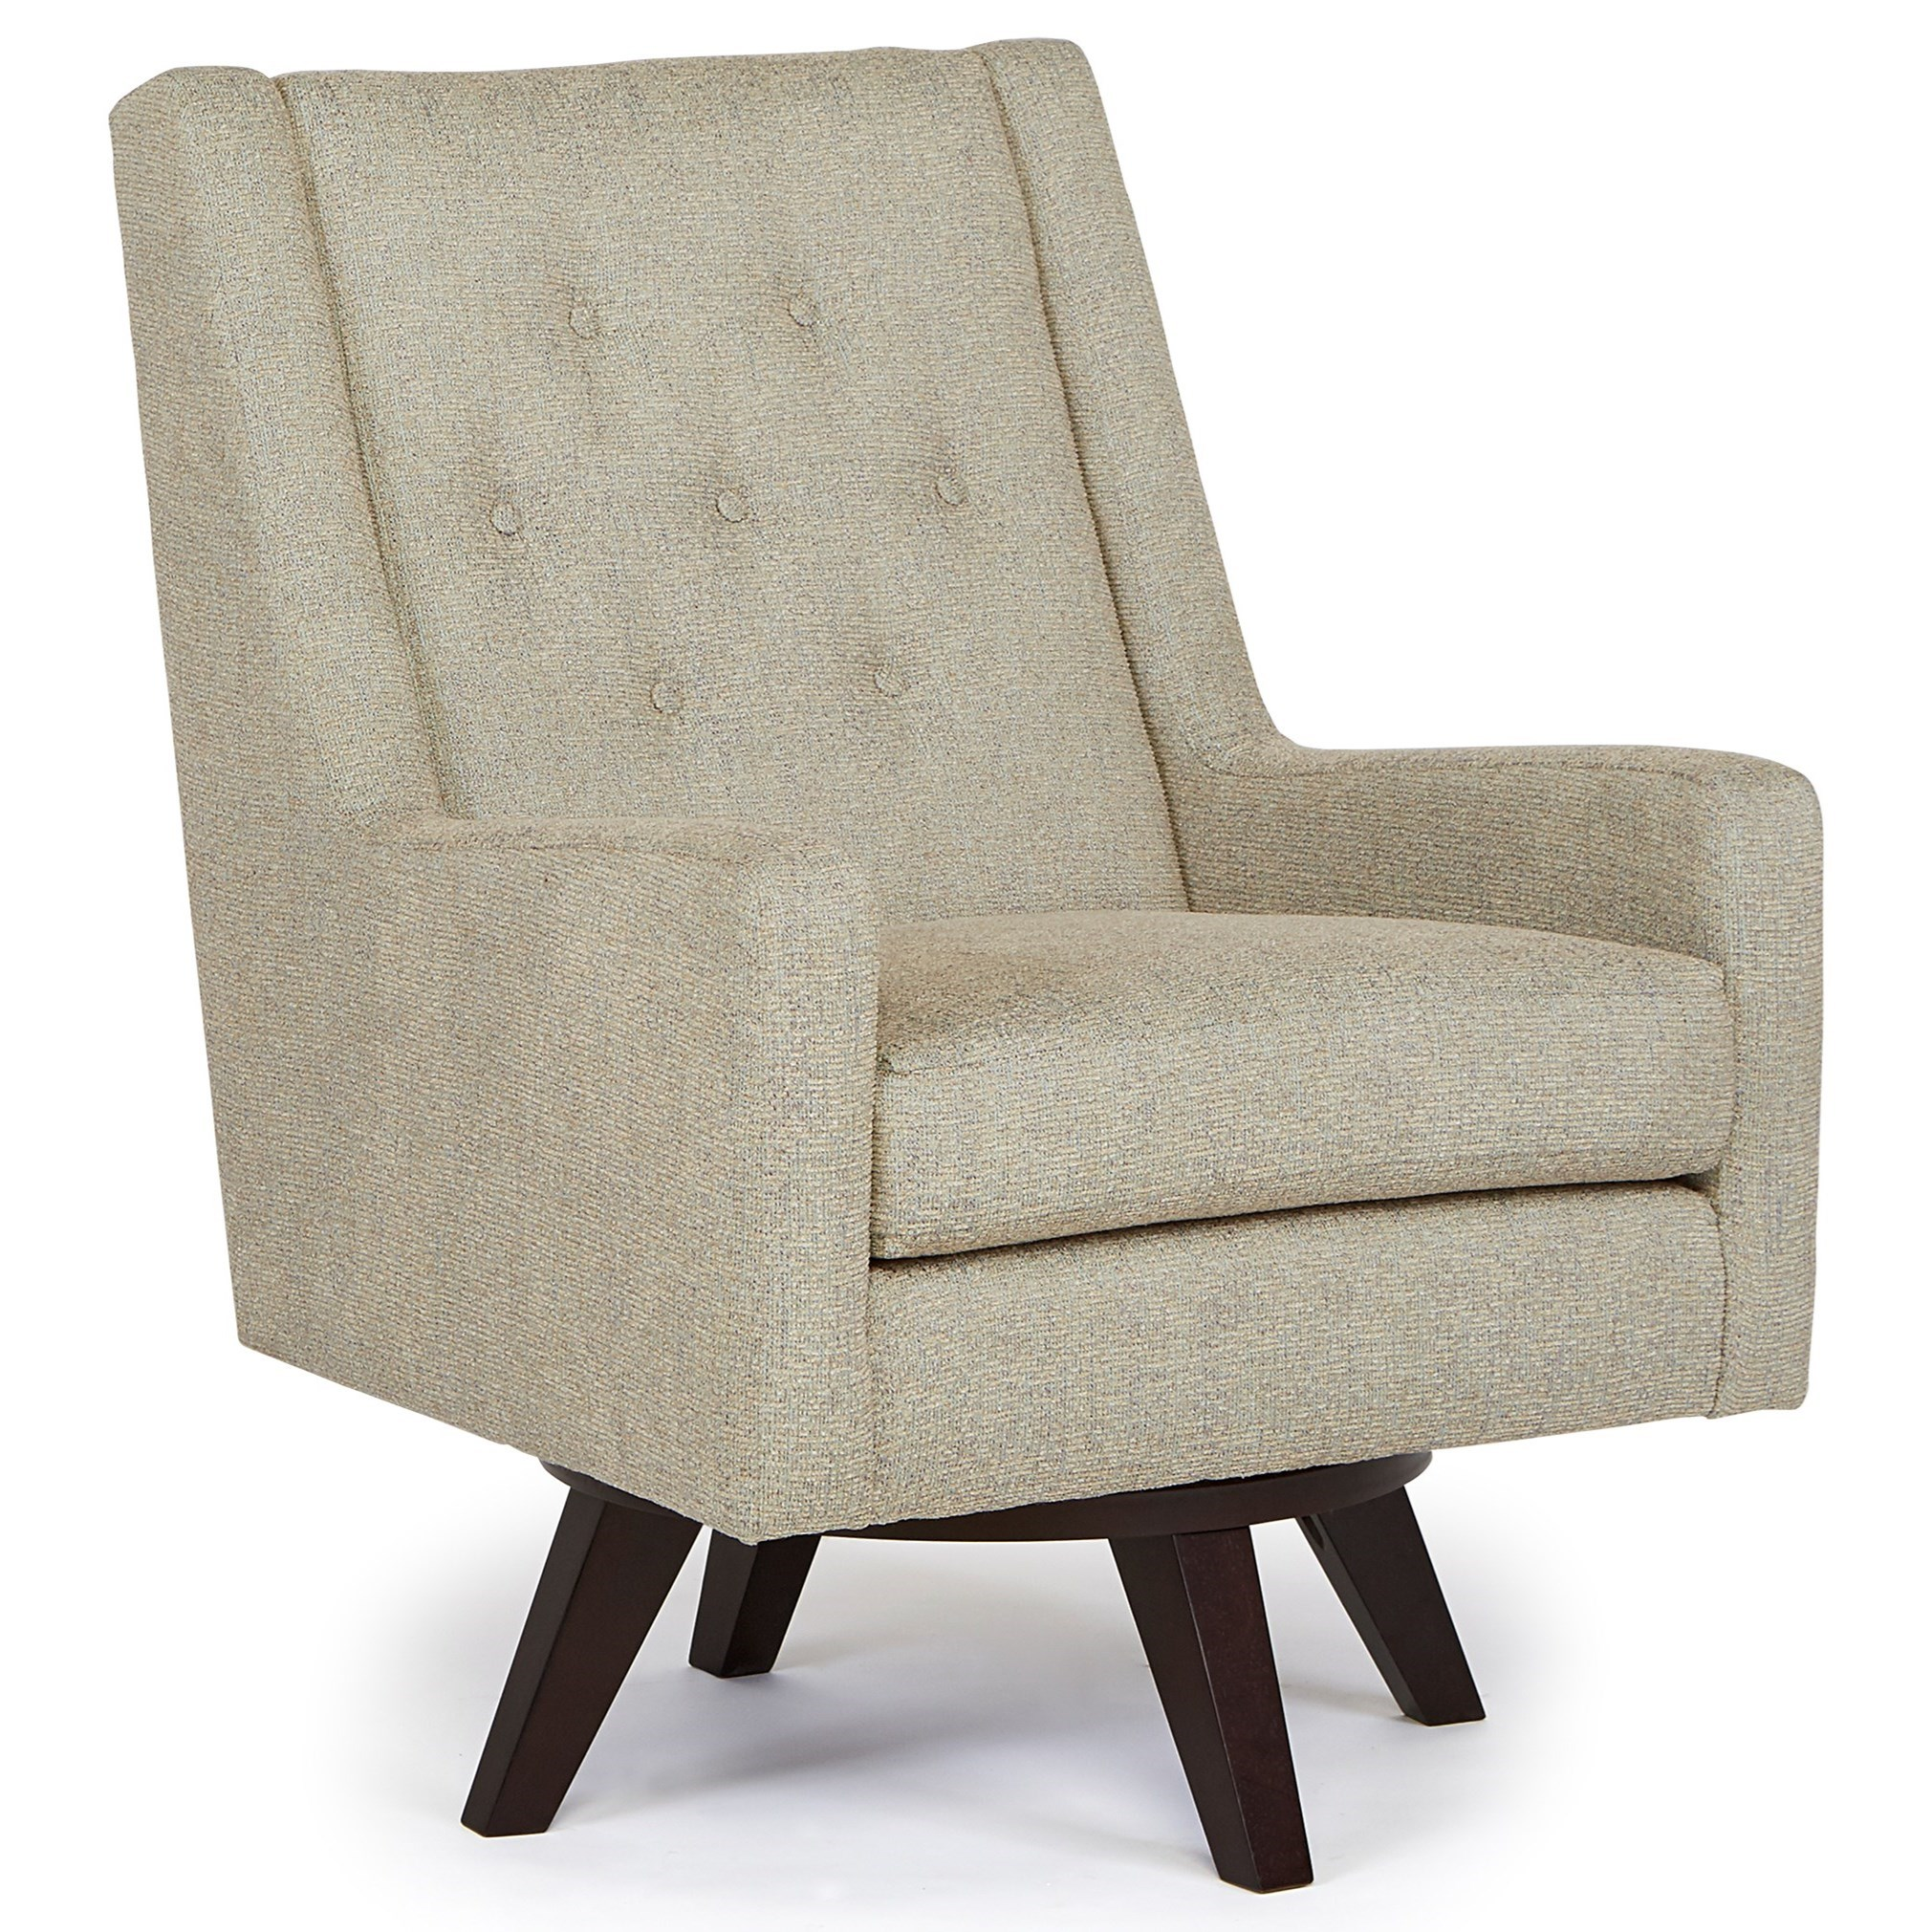 Image of: Best Home Furnishings Kale Mid Century Modern Swivel Chair Howell Furniture Upholstered Chairs